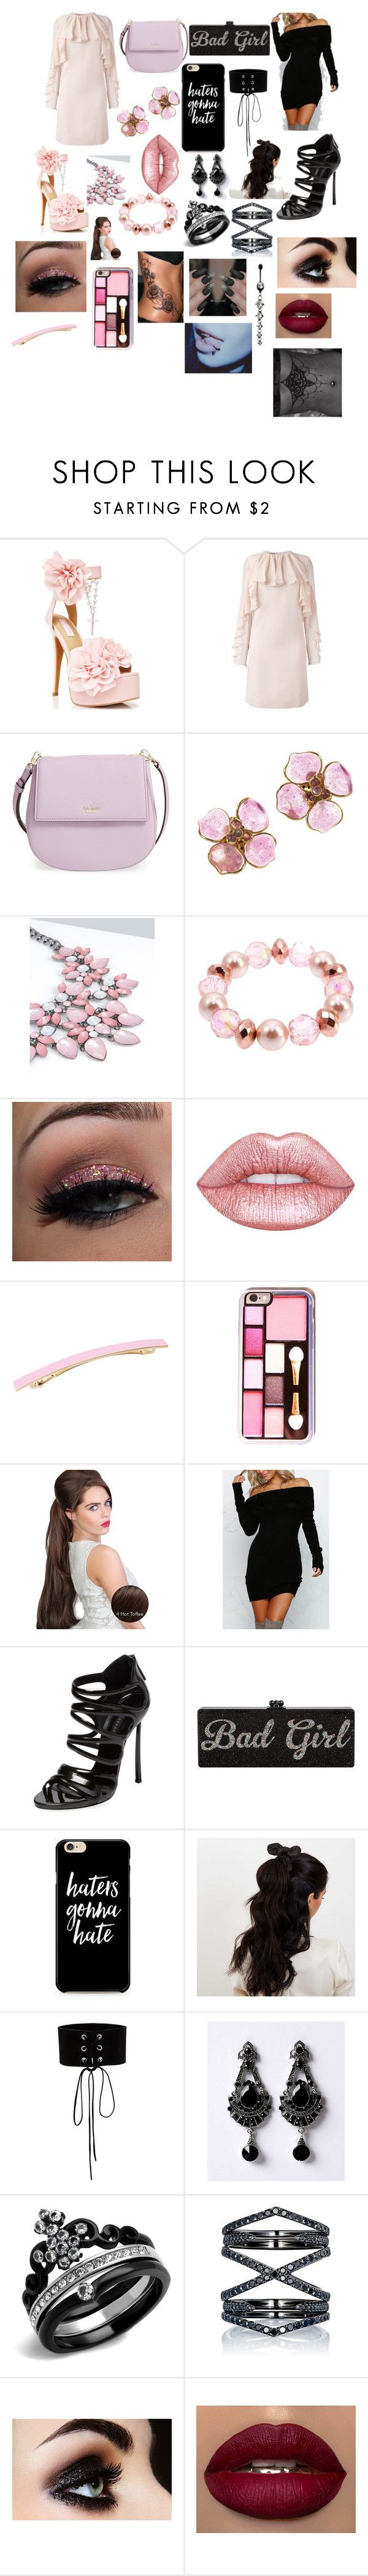 """""""Good girl vs Bad girl"""" by shirowland ❤ liked on Polyvore featuring Sugarbaby, Giambattista Valli, Kate Spade, Chanel, Charter Club, Lime Crime, L. Erickson, Casadei, Johnny Loves Rosie and Manokhi"""